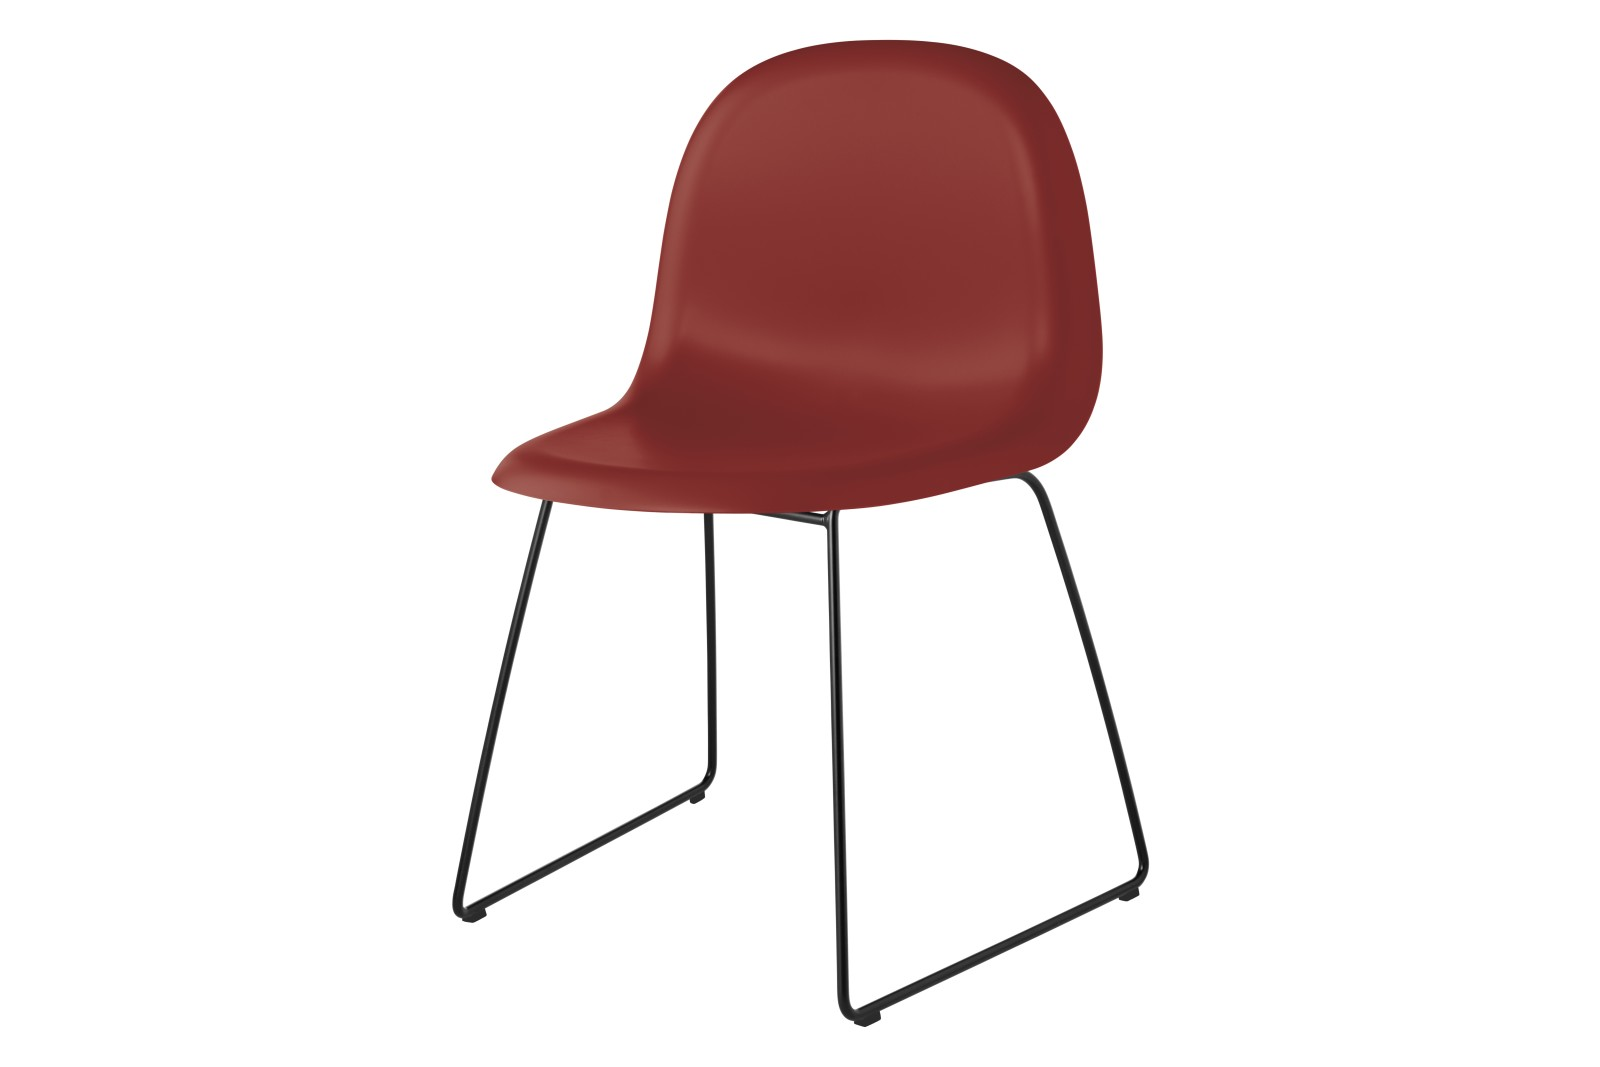 Gubi 3D Dining Chair Sledge Base - Unupholstered Gubi HiRek Shy Cherry, Gubi Metal Black